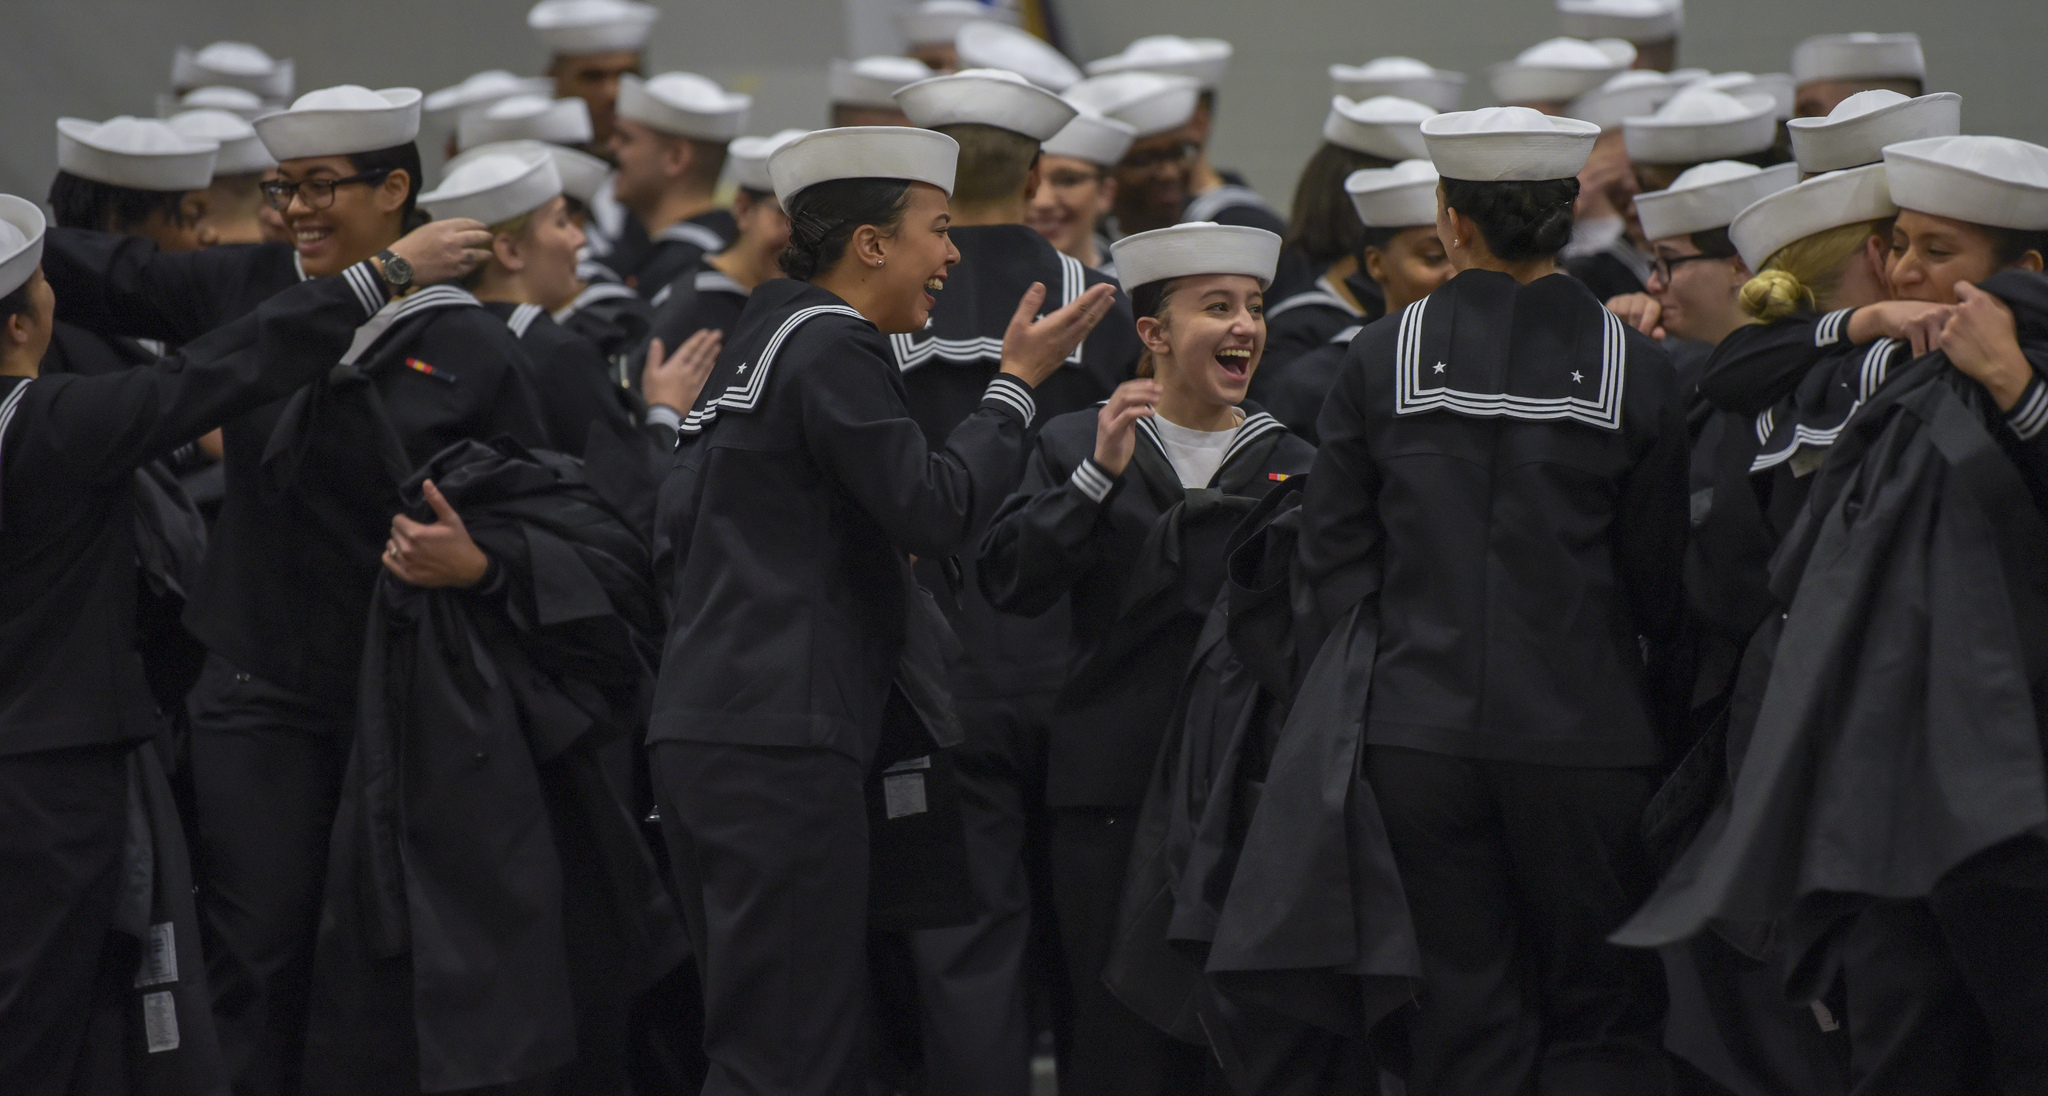 Sailors celebrate after graduating from Recruit Training Command on Jan. 4, 2019, at Great Lakes, Ill. More than 30,000 recruits graduate annually from the Navy's only boot camp. (MC1 Spencer Fling/Navy)